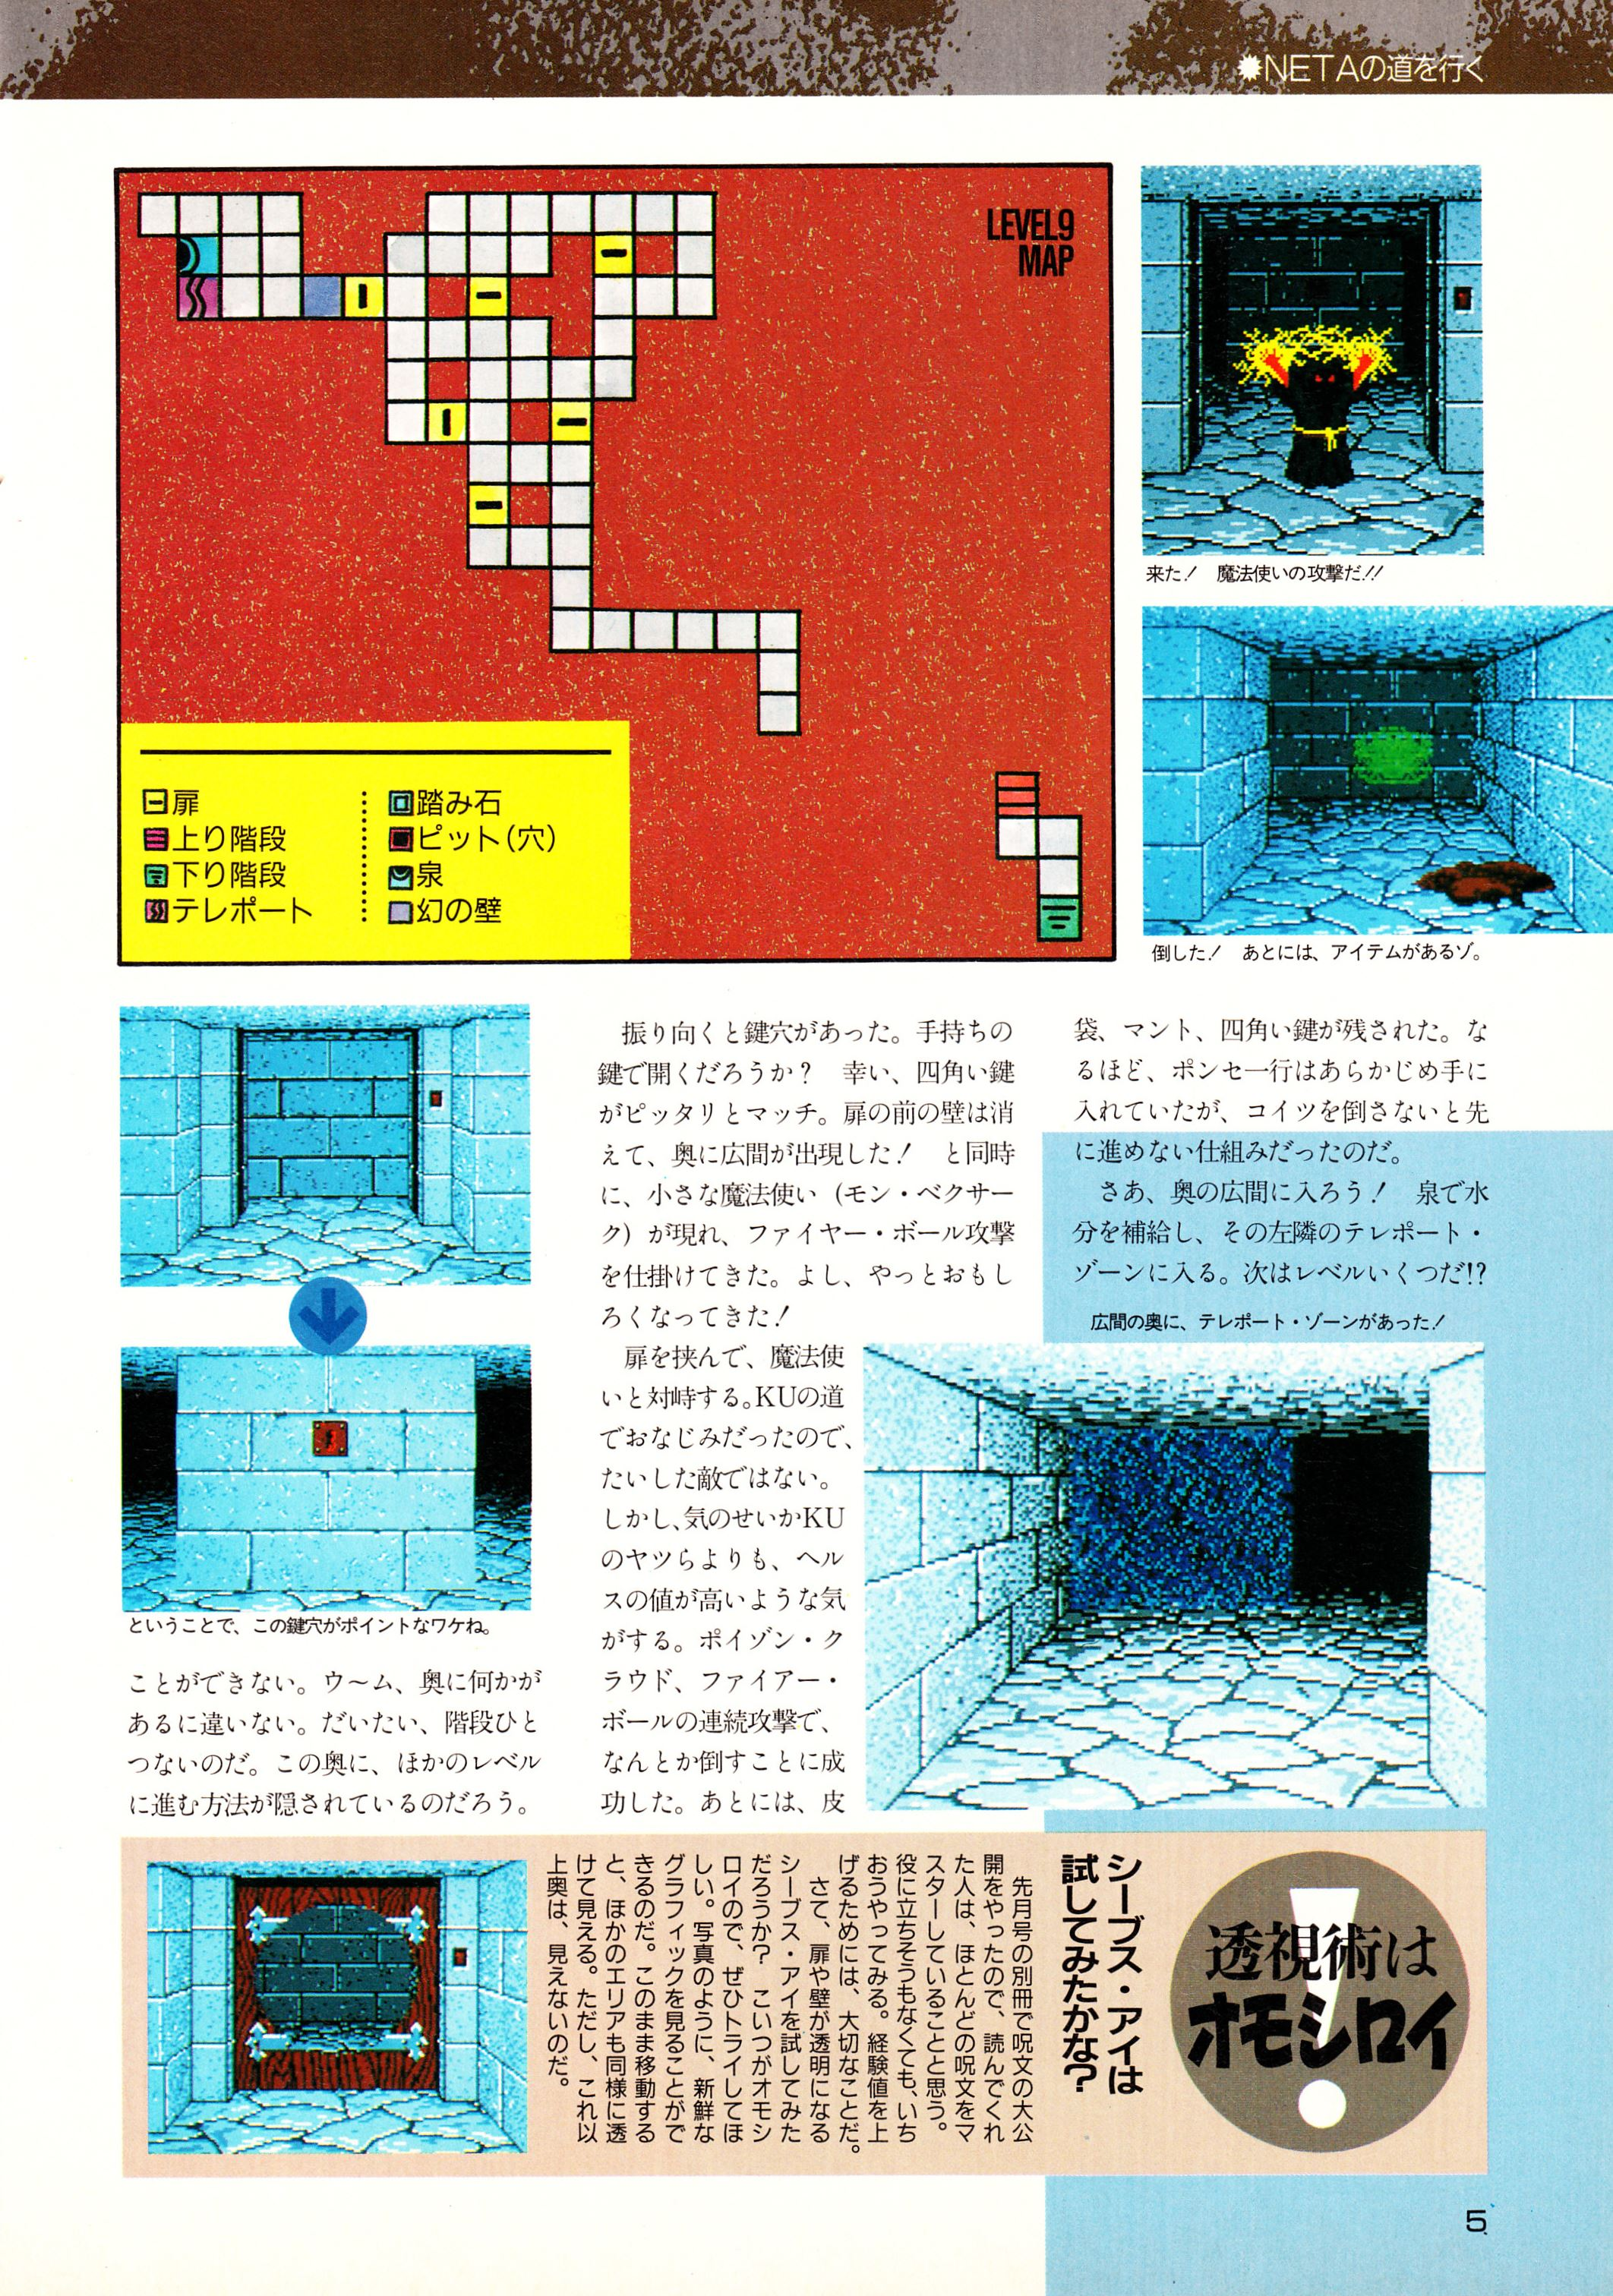 Supplement - Chaos Strikes Back Companion Guide II Guide published in Japanese magazine 'Popcom', Vol 9 No 3 01 March 1991, Page 7